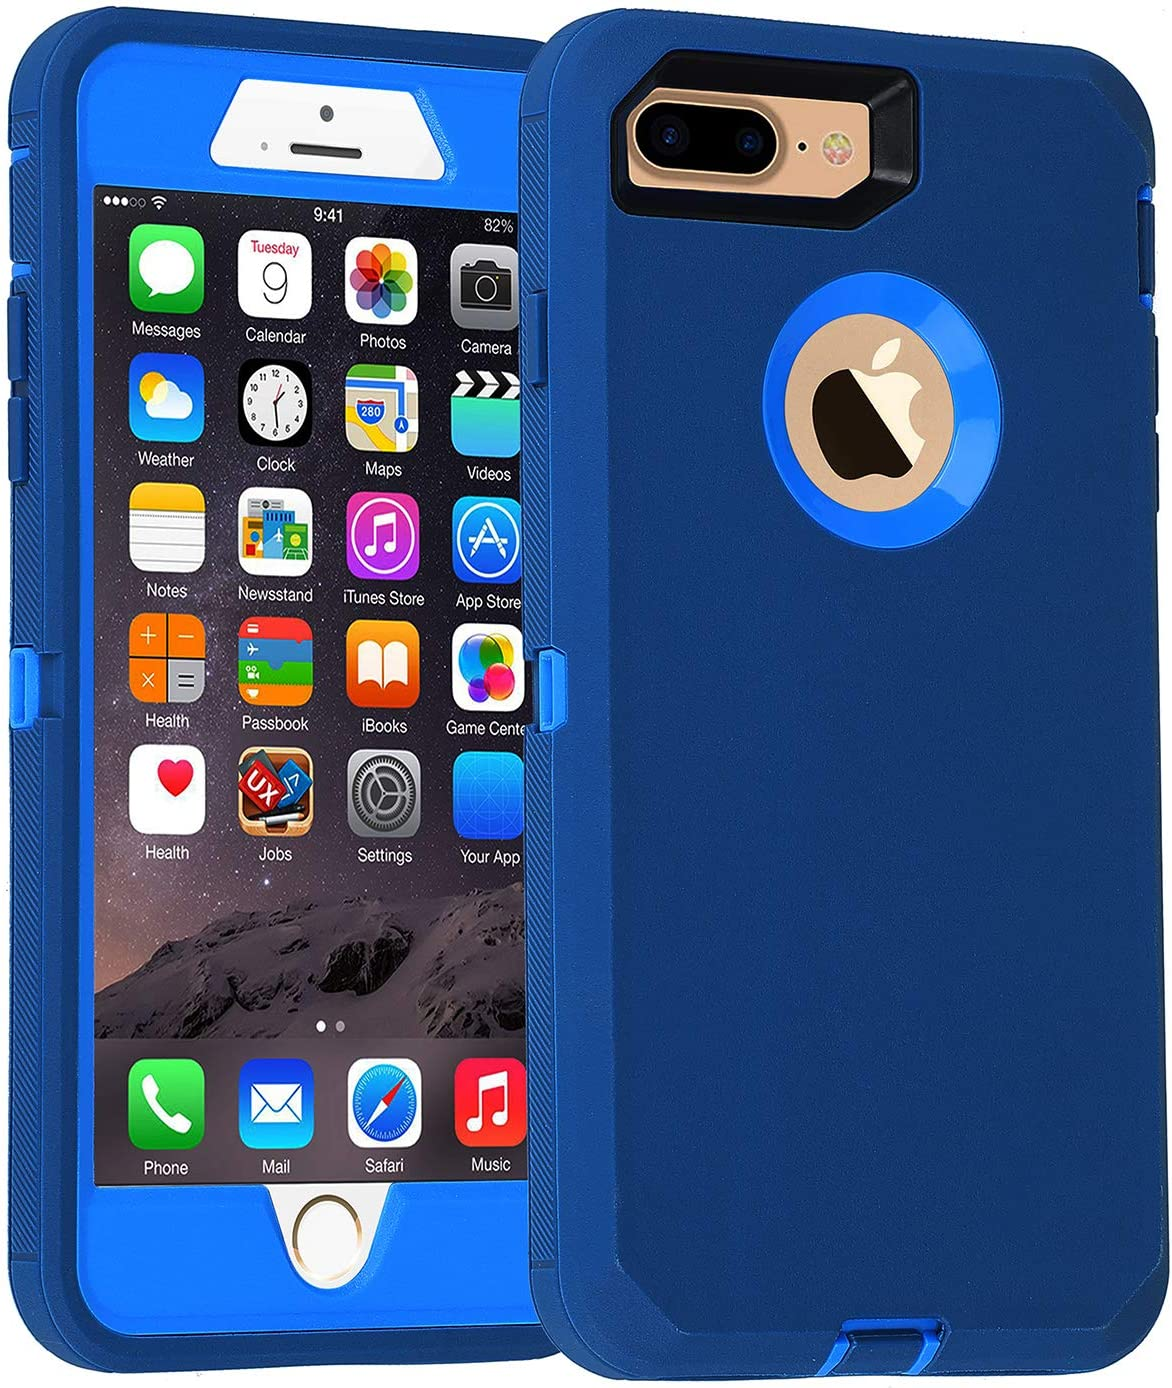 Co-Goldguard Case for iPhone 7 Plus/8 Plus Heavy Duty 3 in 1 Built-in Screen Protector Durable Cover Dust-Proof Shockproof Scratch-Resistant Shell Compatible with iPhone 7+/8+ 5.5 Blue/Navy